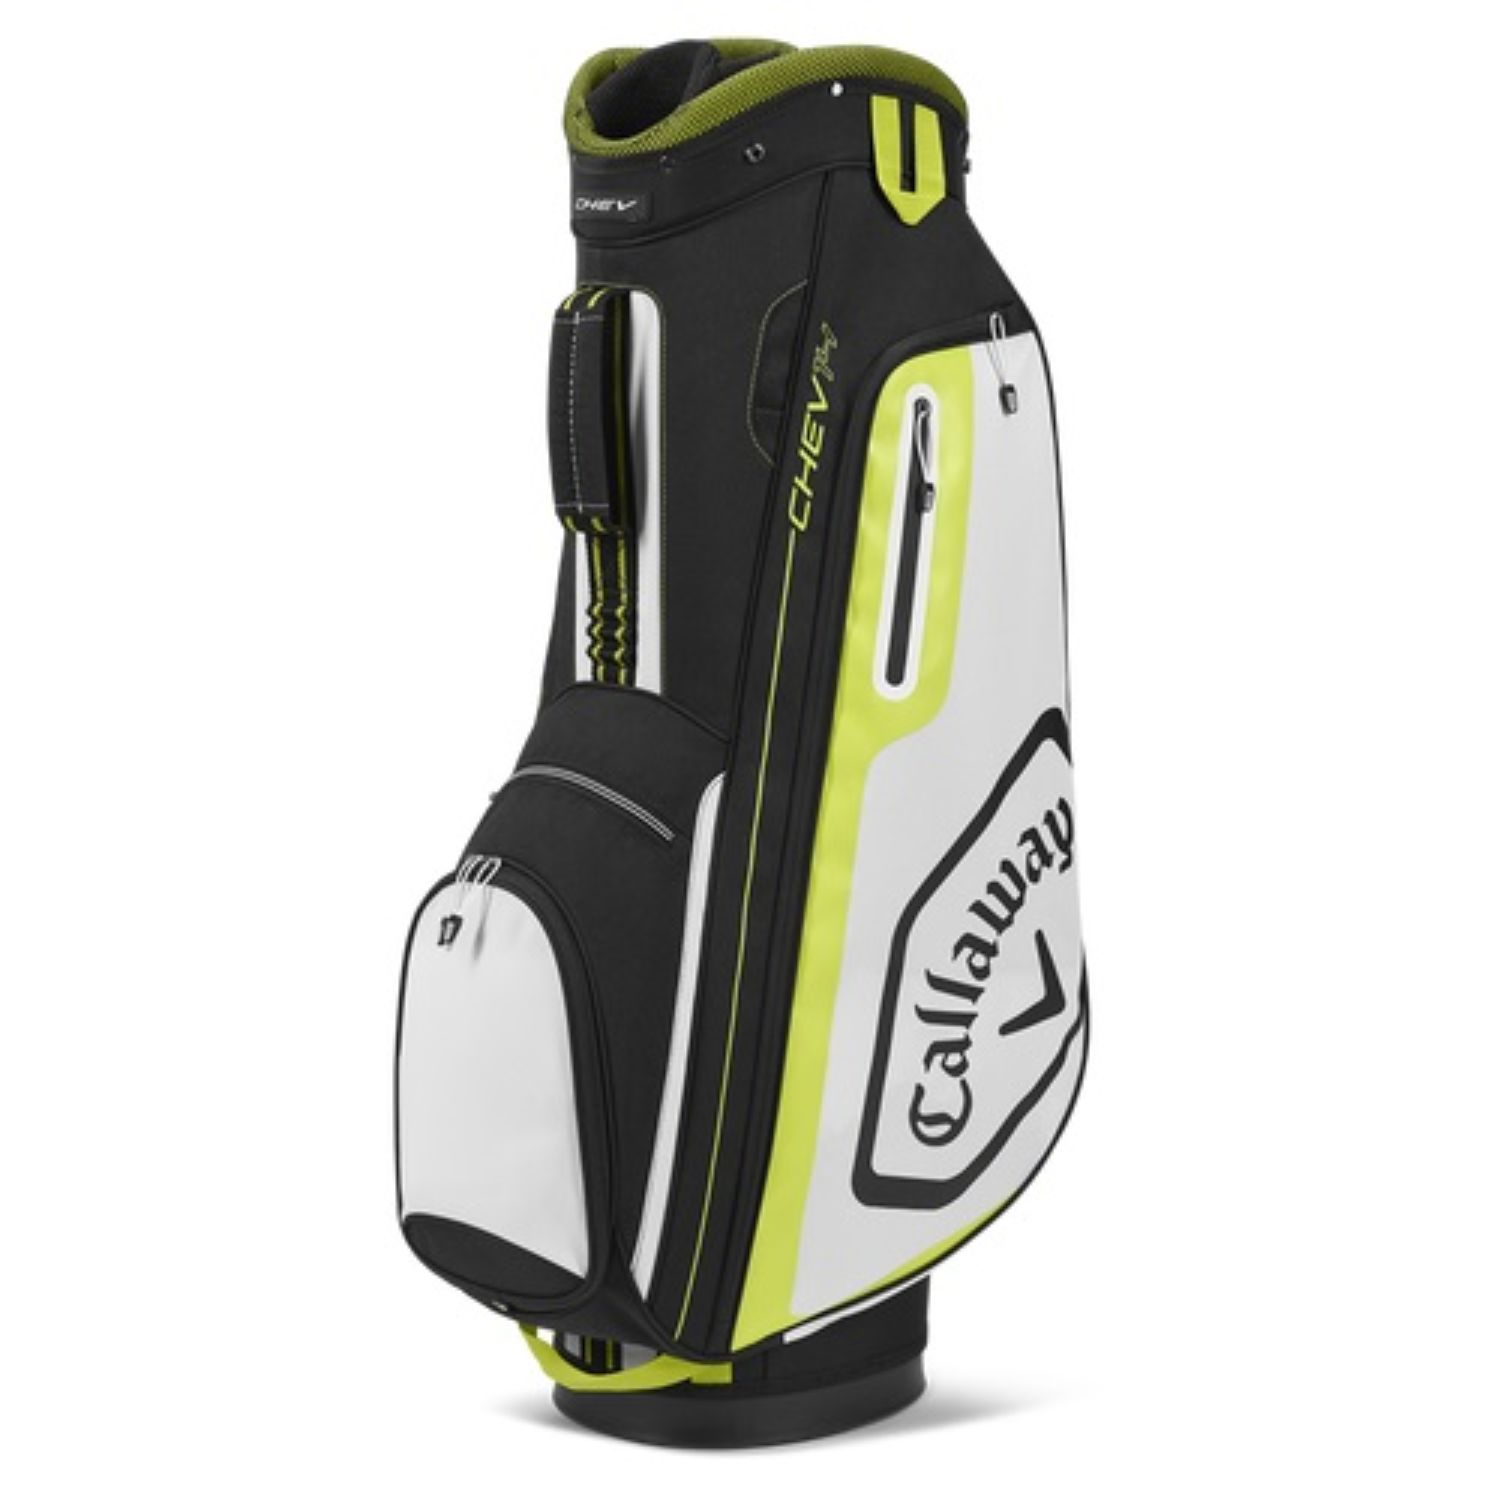 Callaway Golf 2020 Chev 14 Cart Bag-Black-White-Yellow